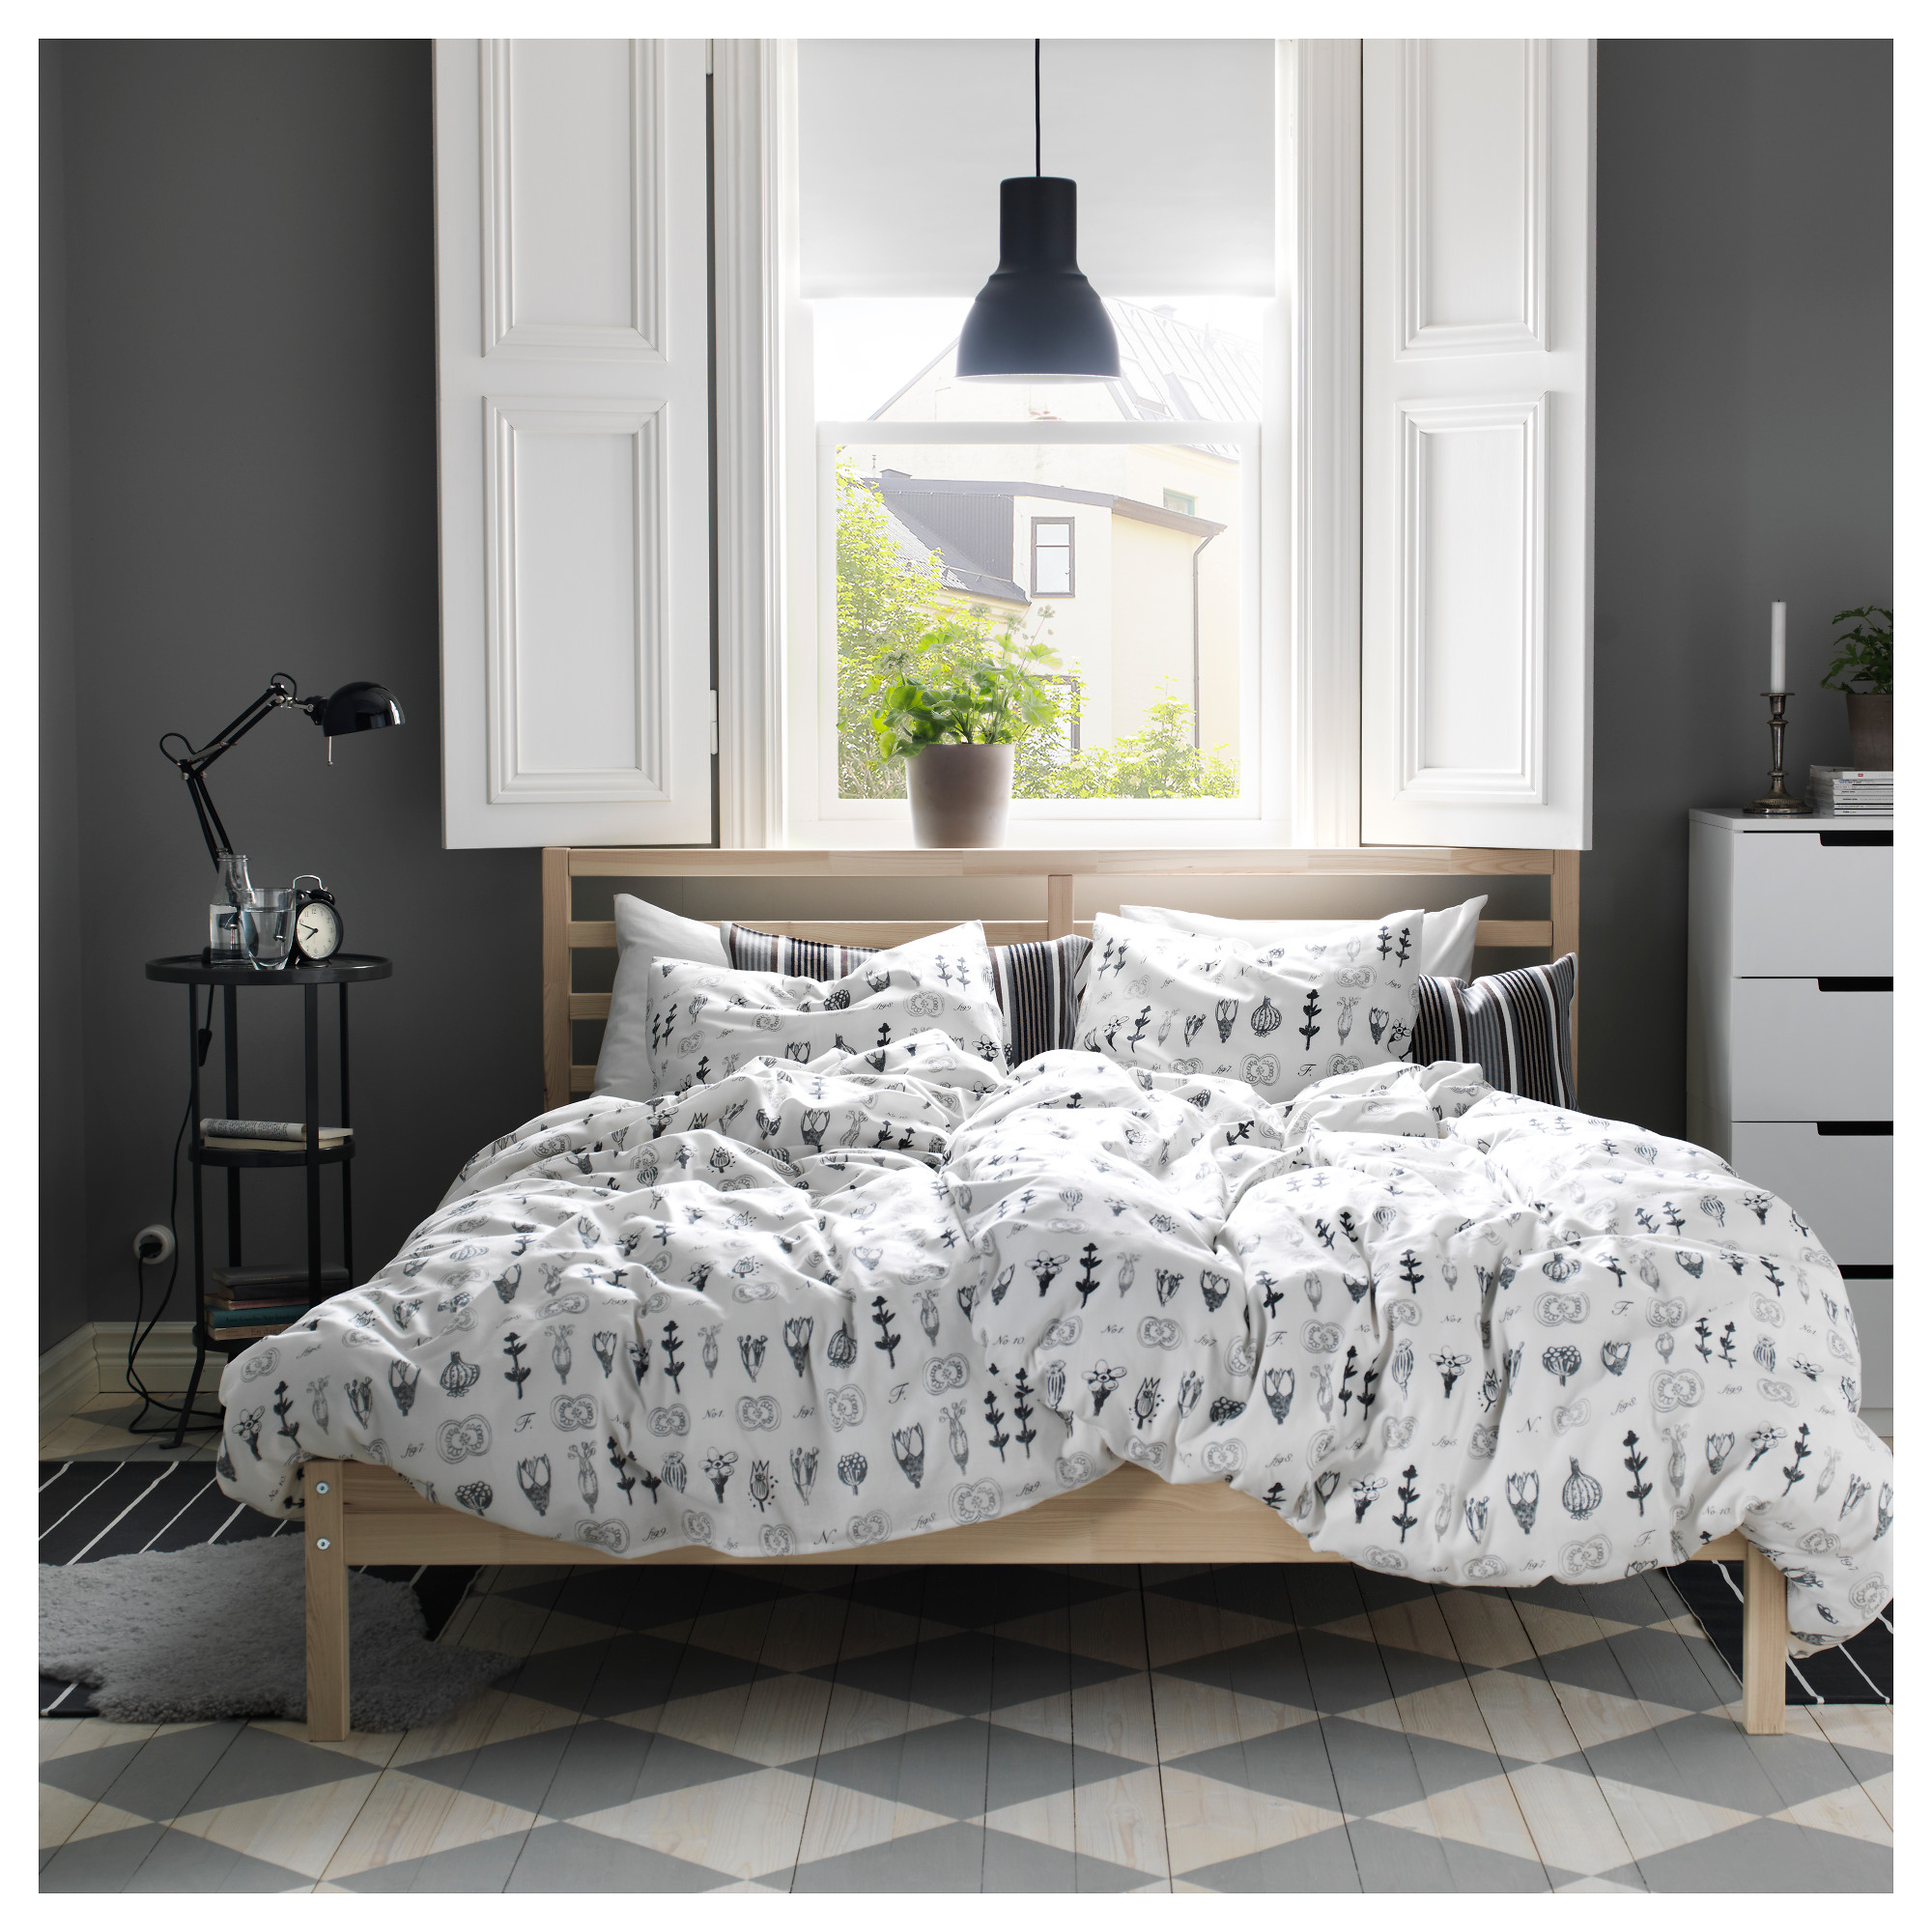 TARVA Bed frame - Queen, Luröy - IKEA